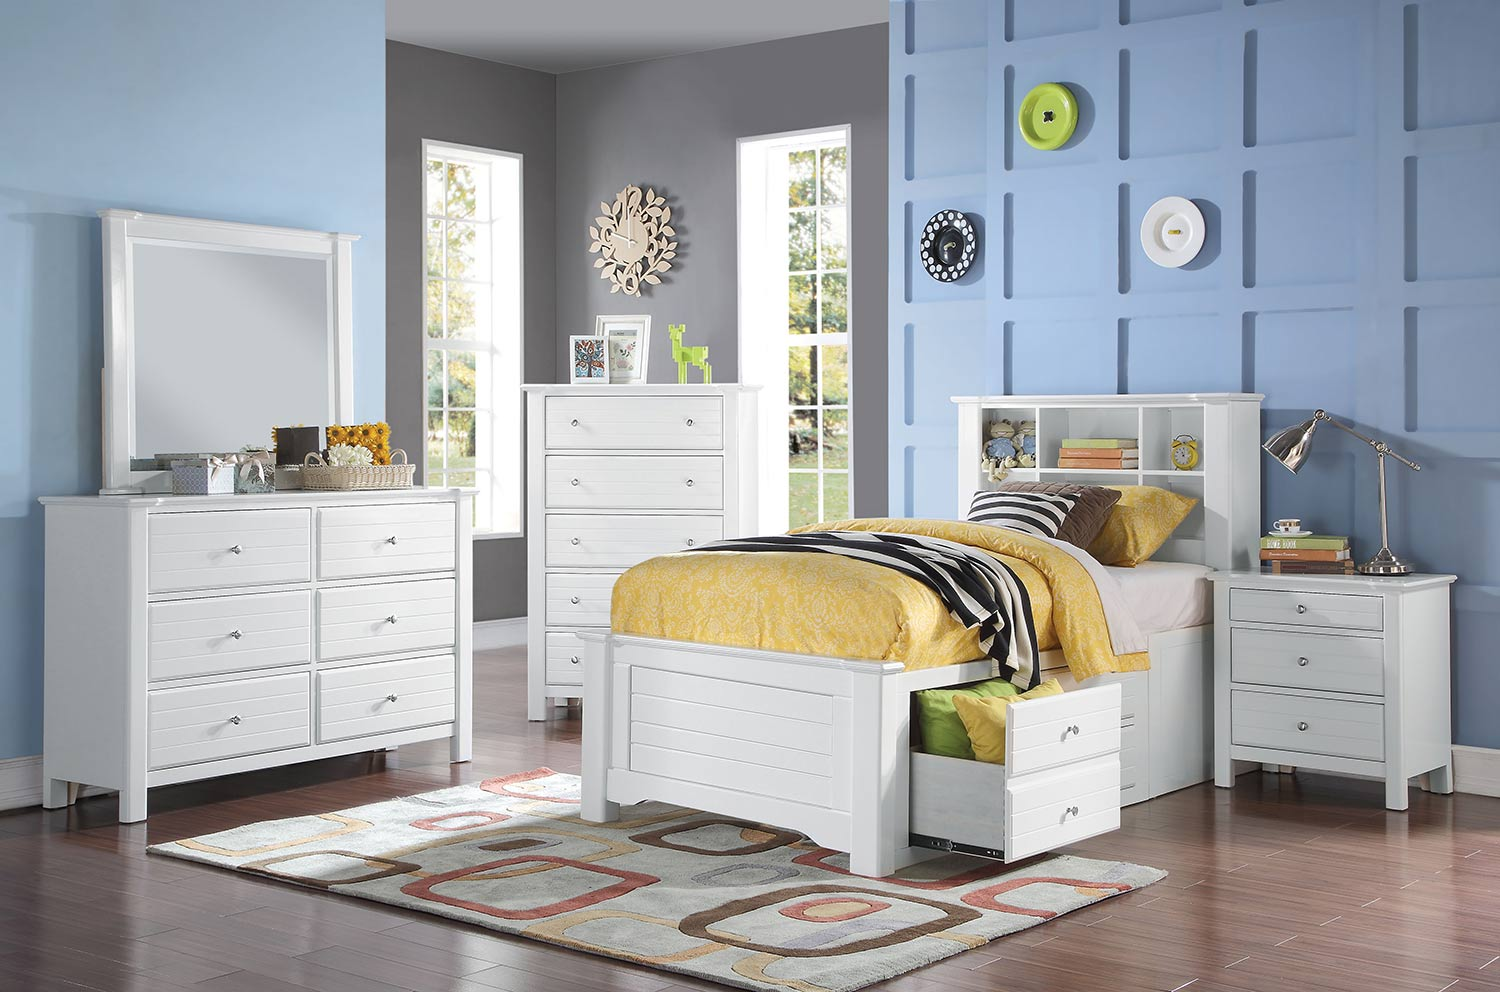 Acme Mallowsea Bedroom Set with Storage Rail - White